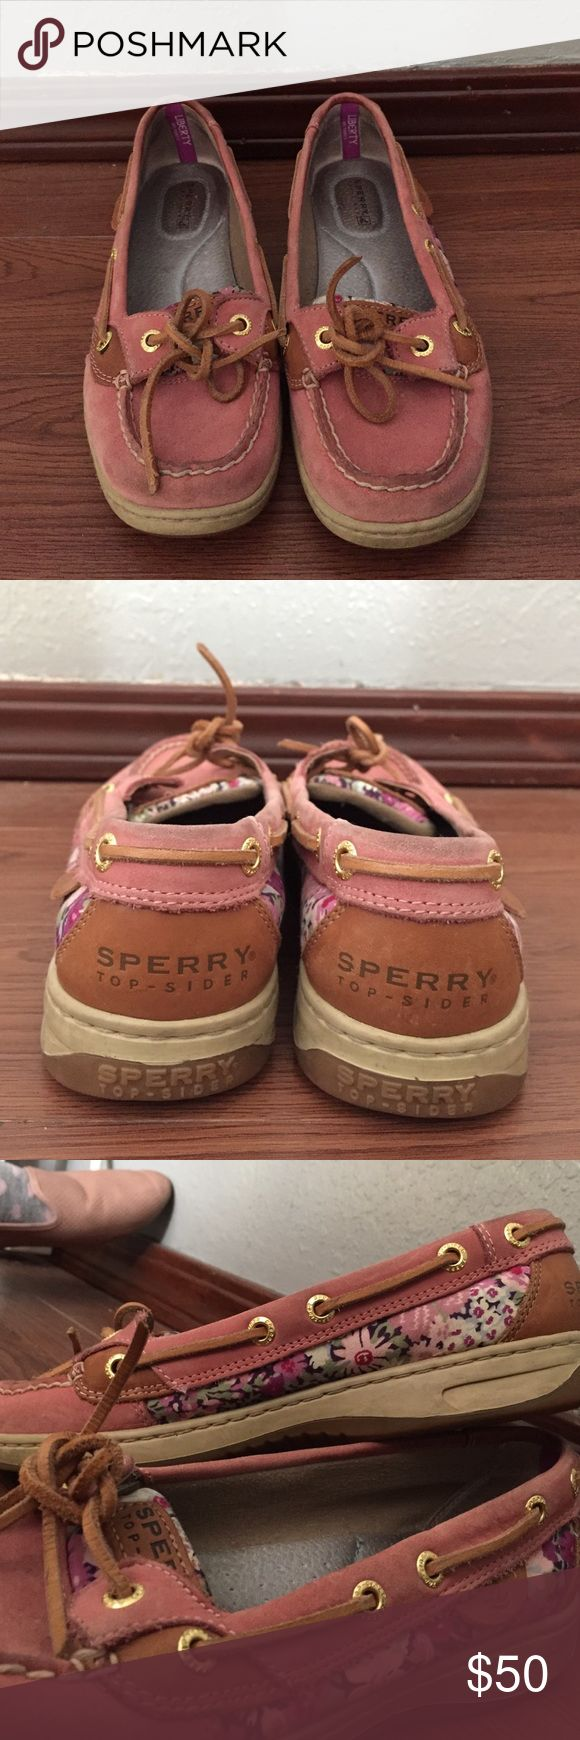 Light Pink Sperrys size 6 Light Pink Sperry's with floral pattern on side worn several times but still in great condition. Sperry Top-Sider Shoes